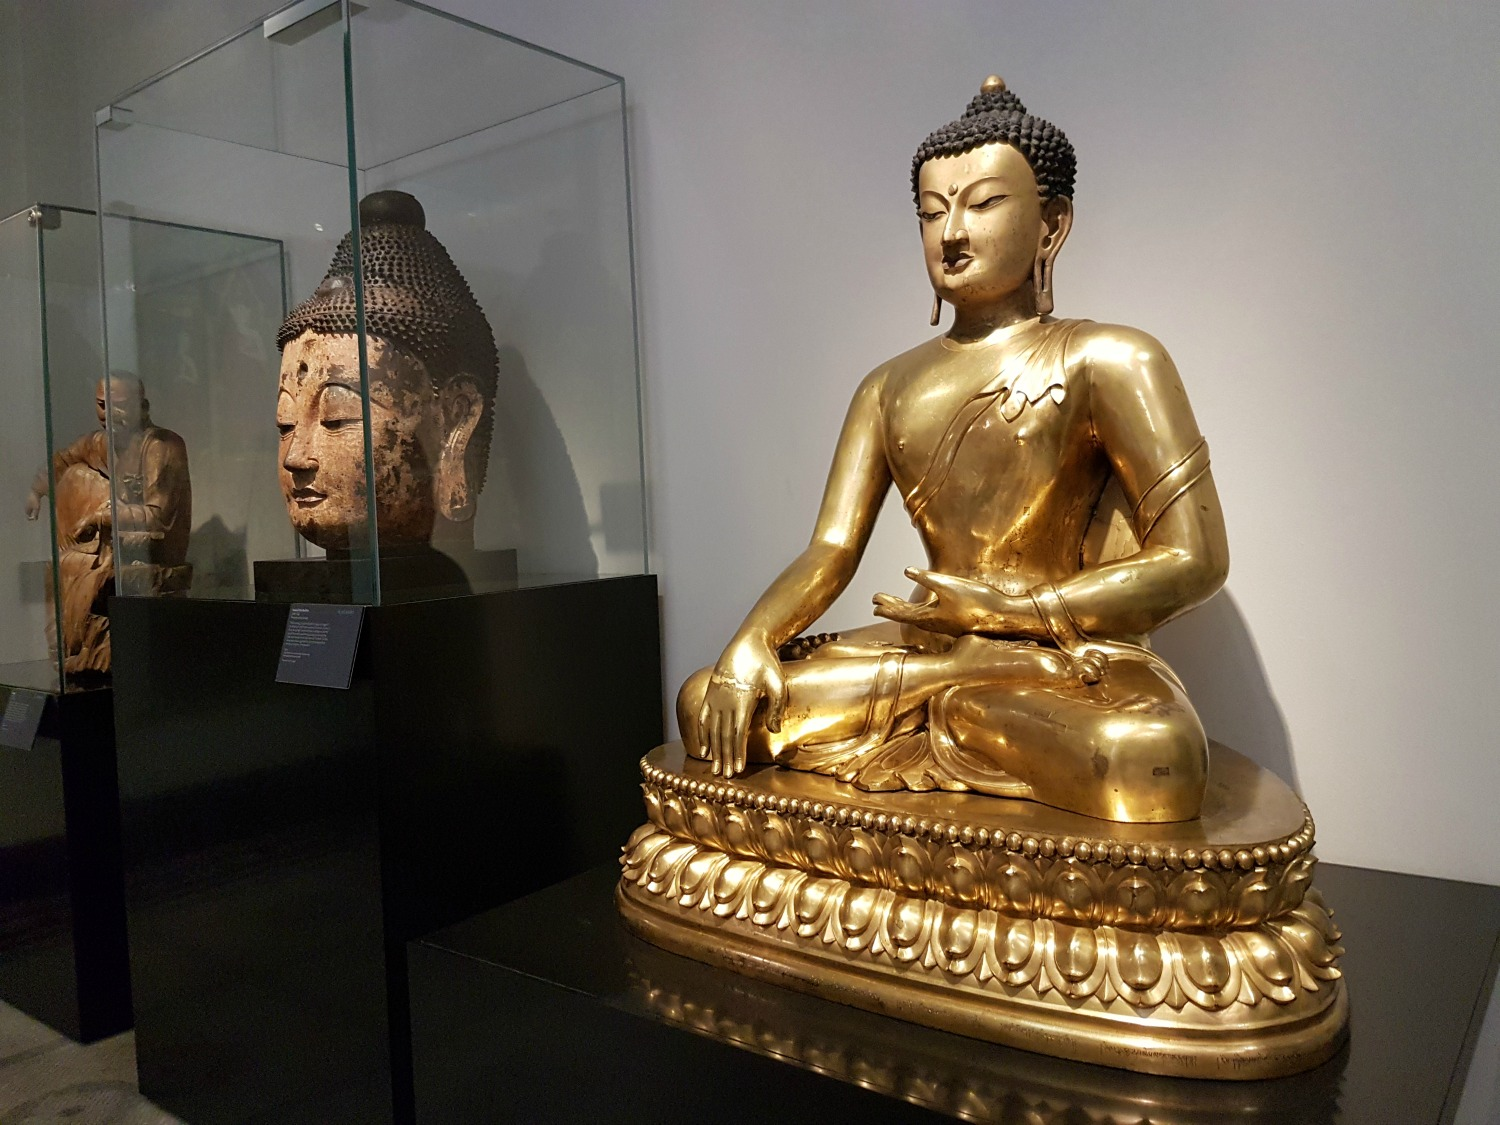 Golden Buddha statues at the V&A - my review of our visit, and why the Victoria and Albert museum with kids is a great idea